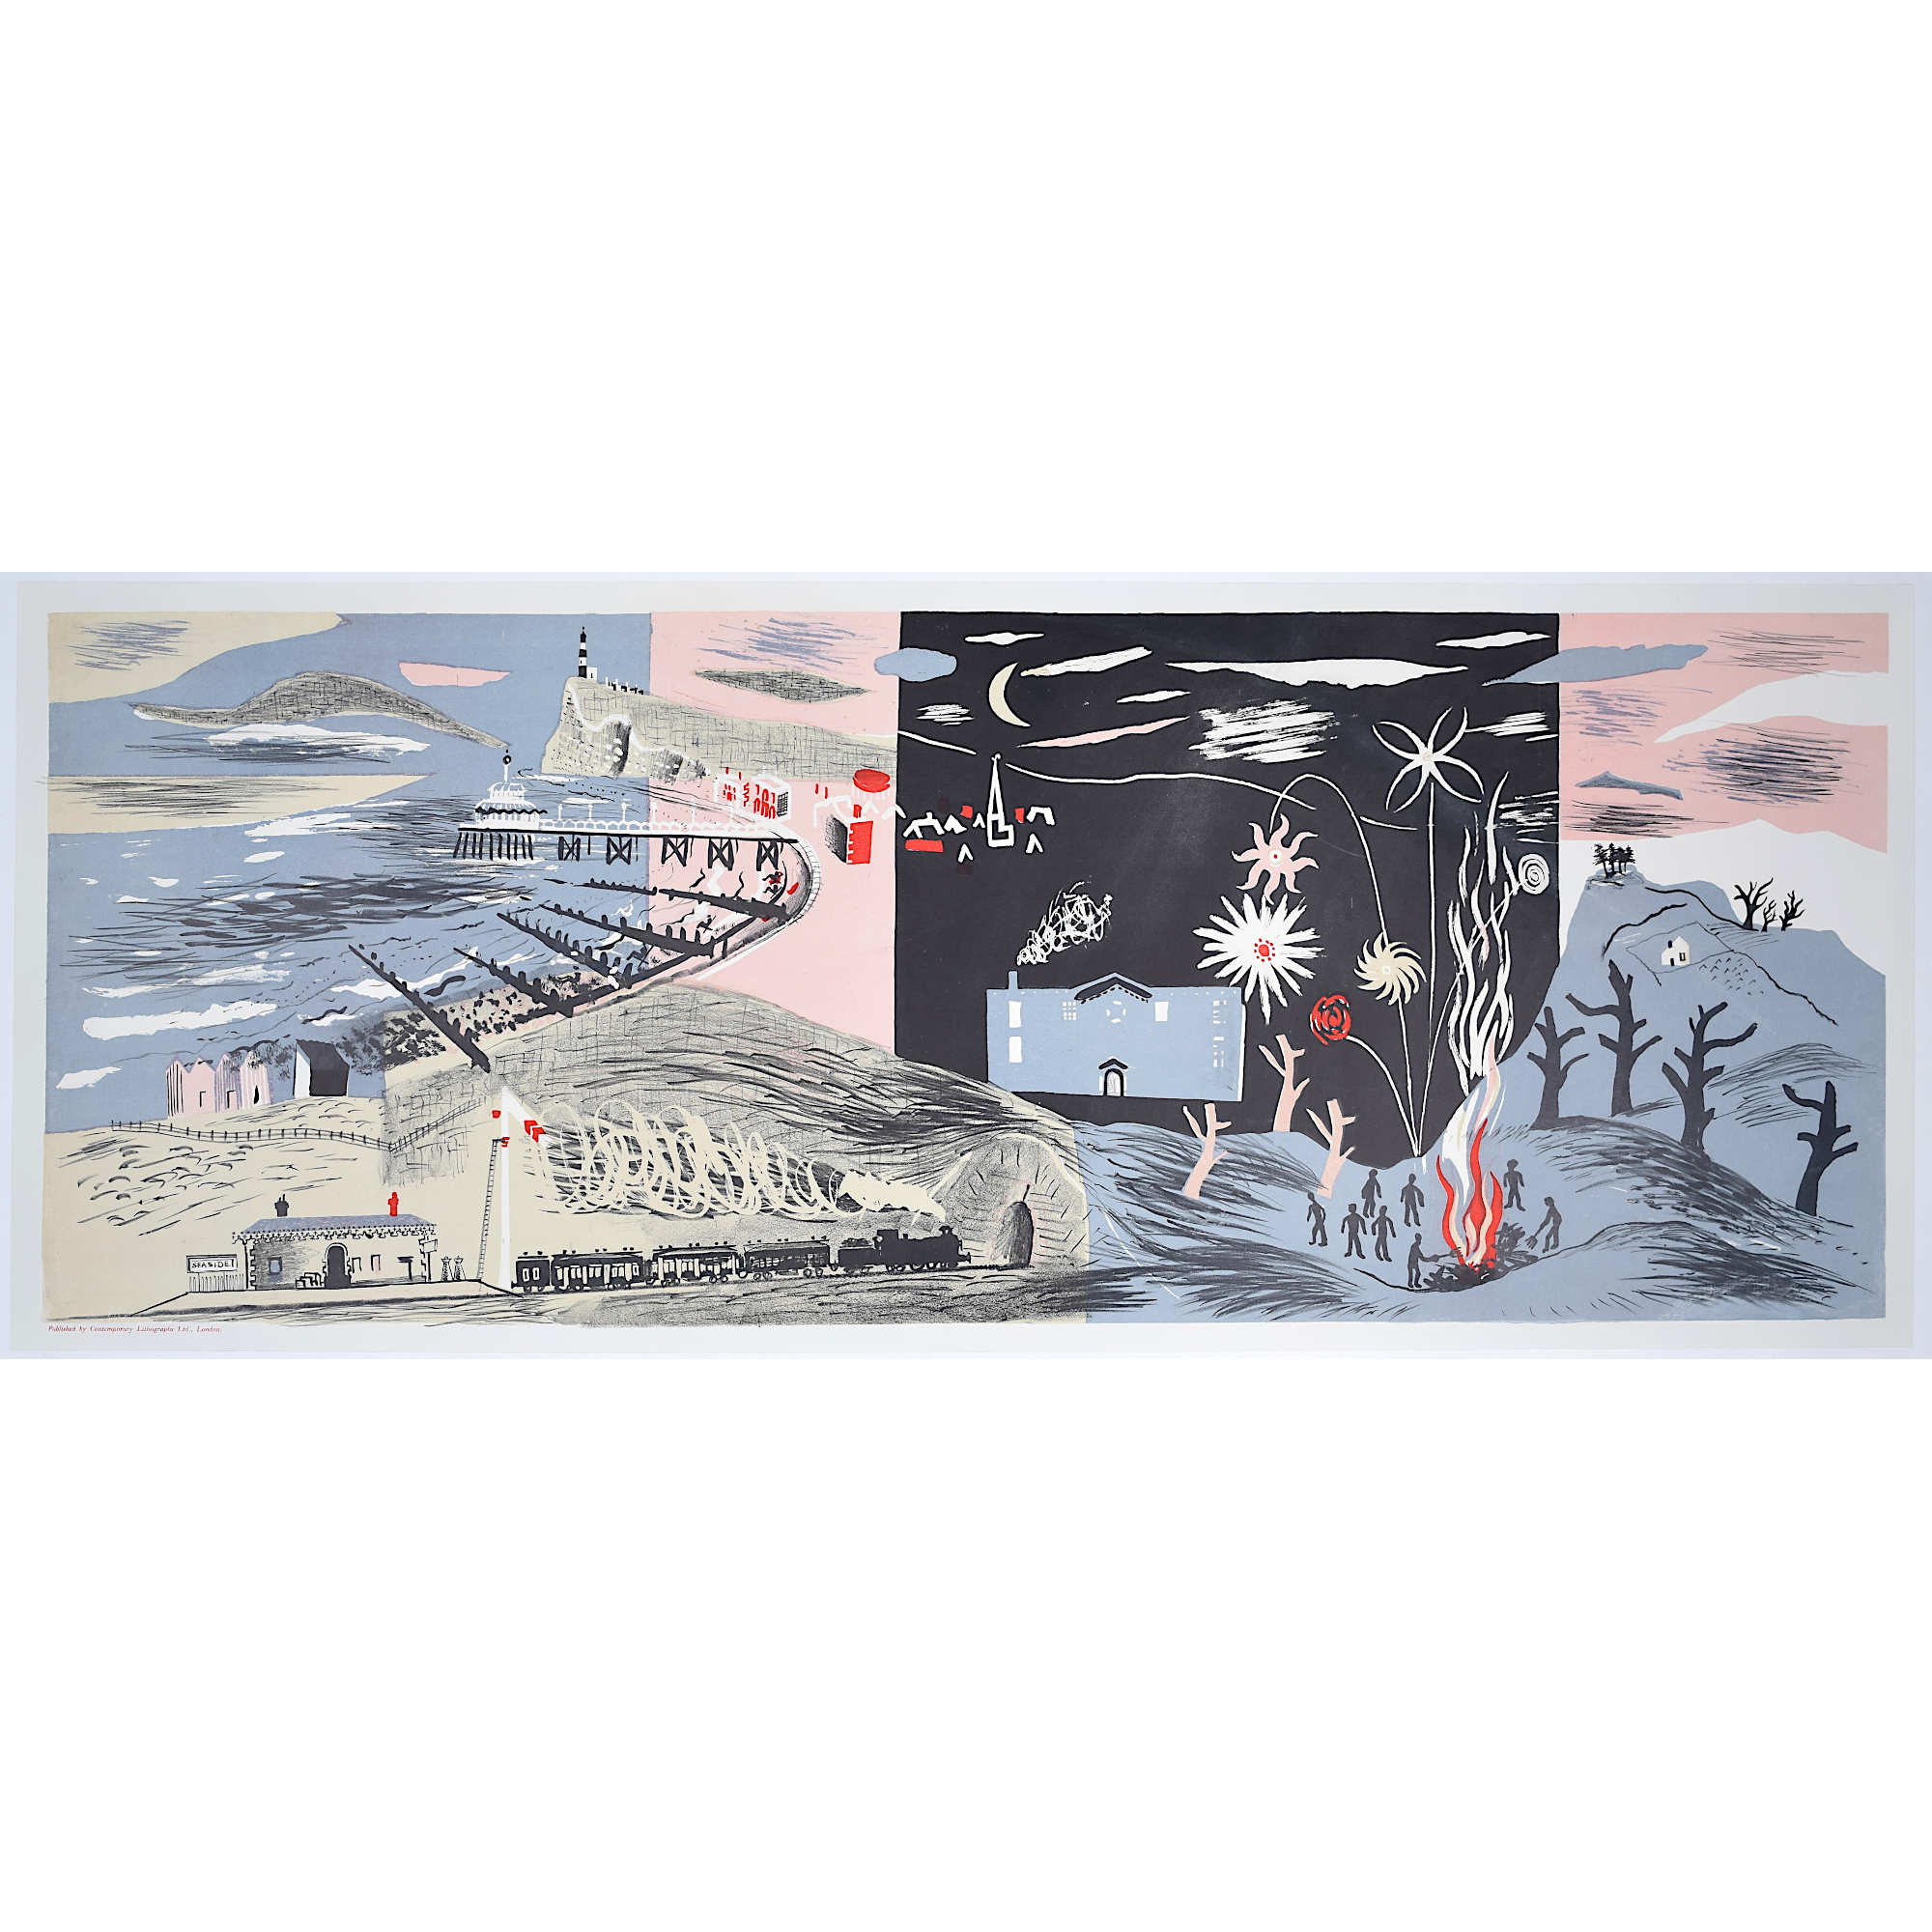 John Piper, Nursery Frieze II, Lithograph Modern British Art Surrealist Beach